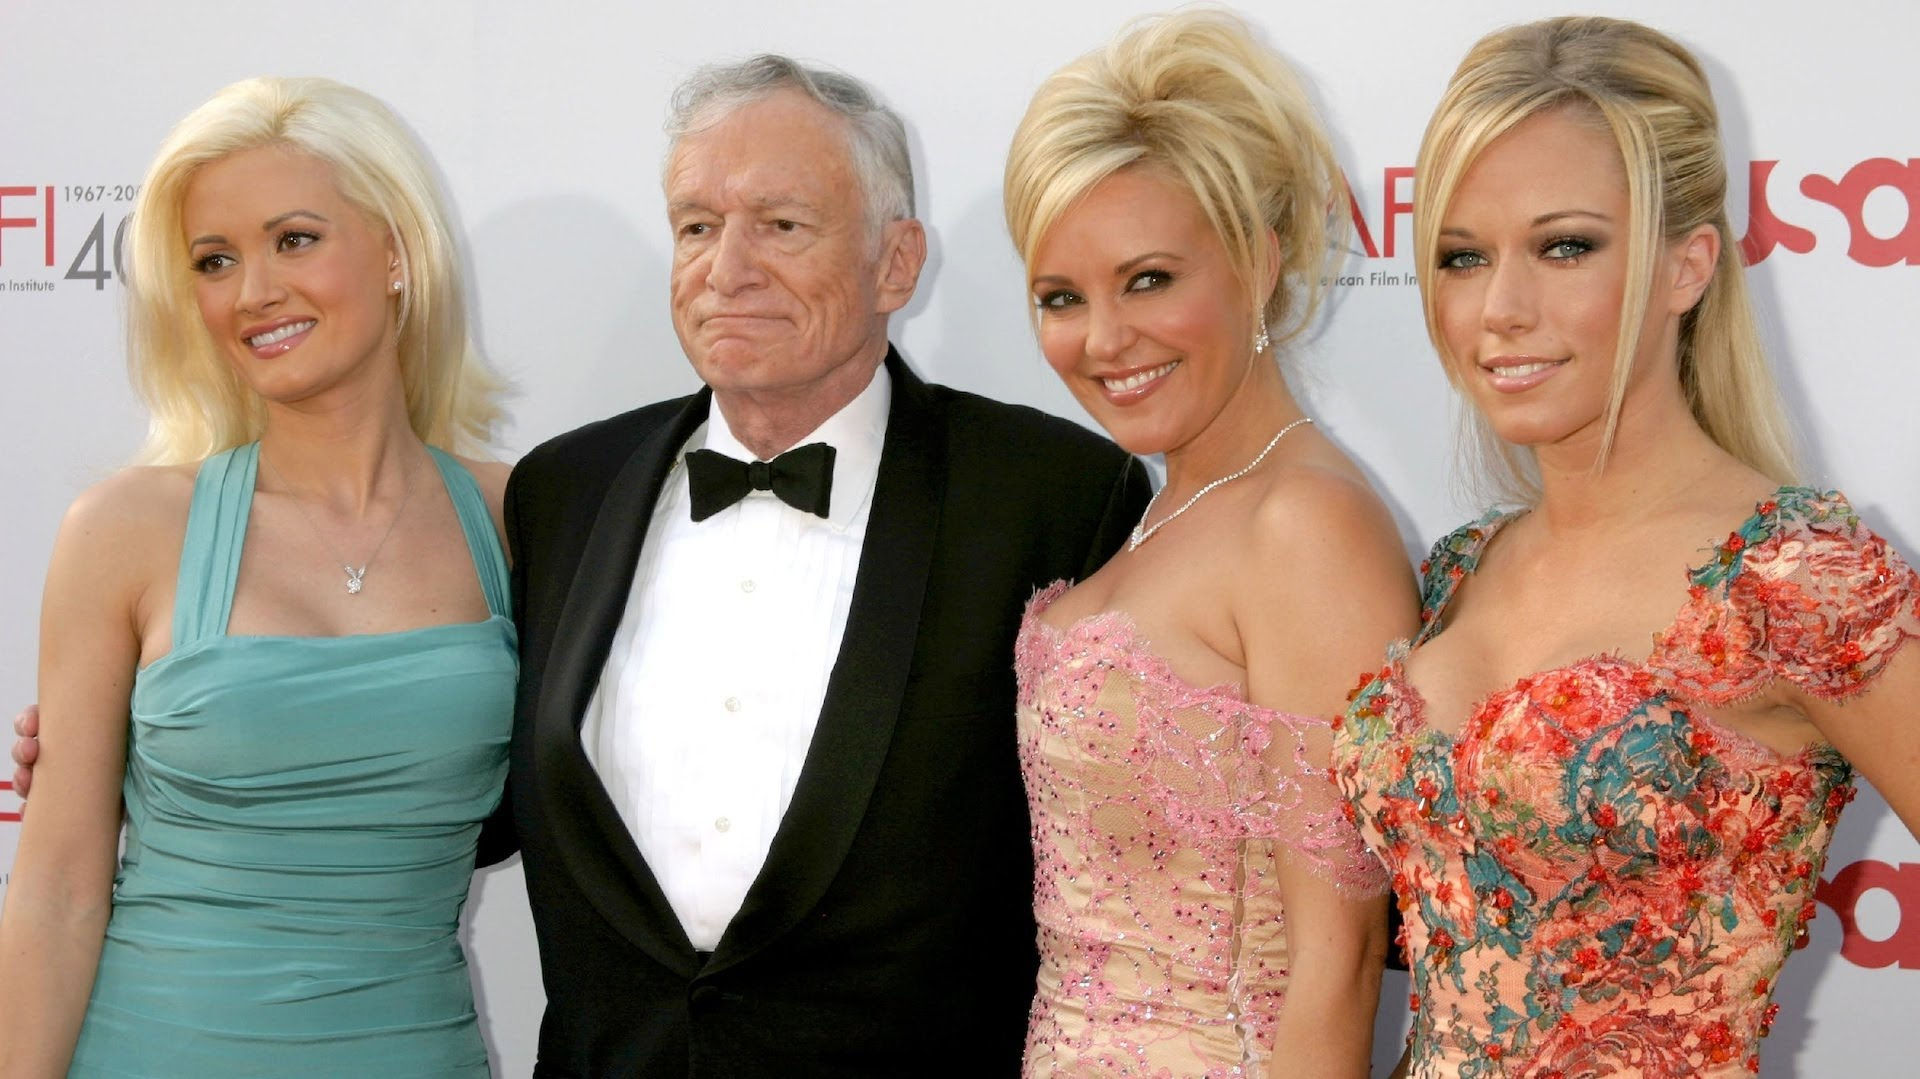 Holly Madison Wedding.Kendra Wilkinson Why I Don T Talk To Holly Madison Anymore